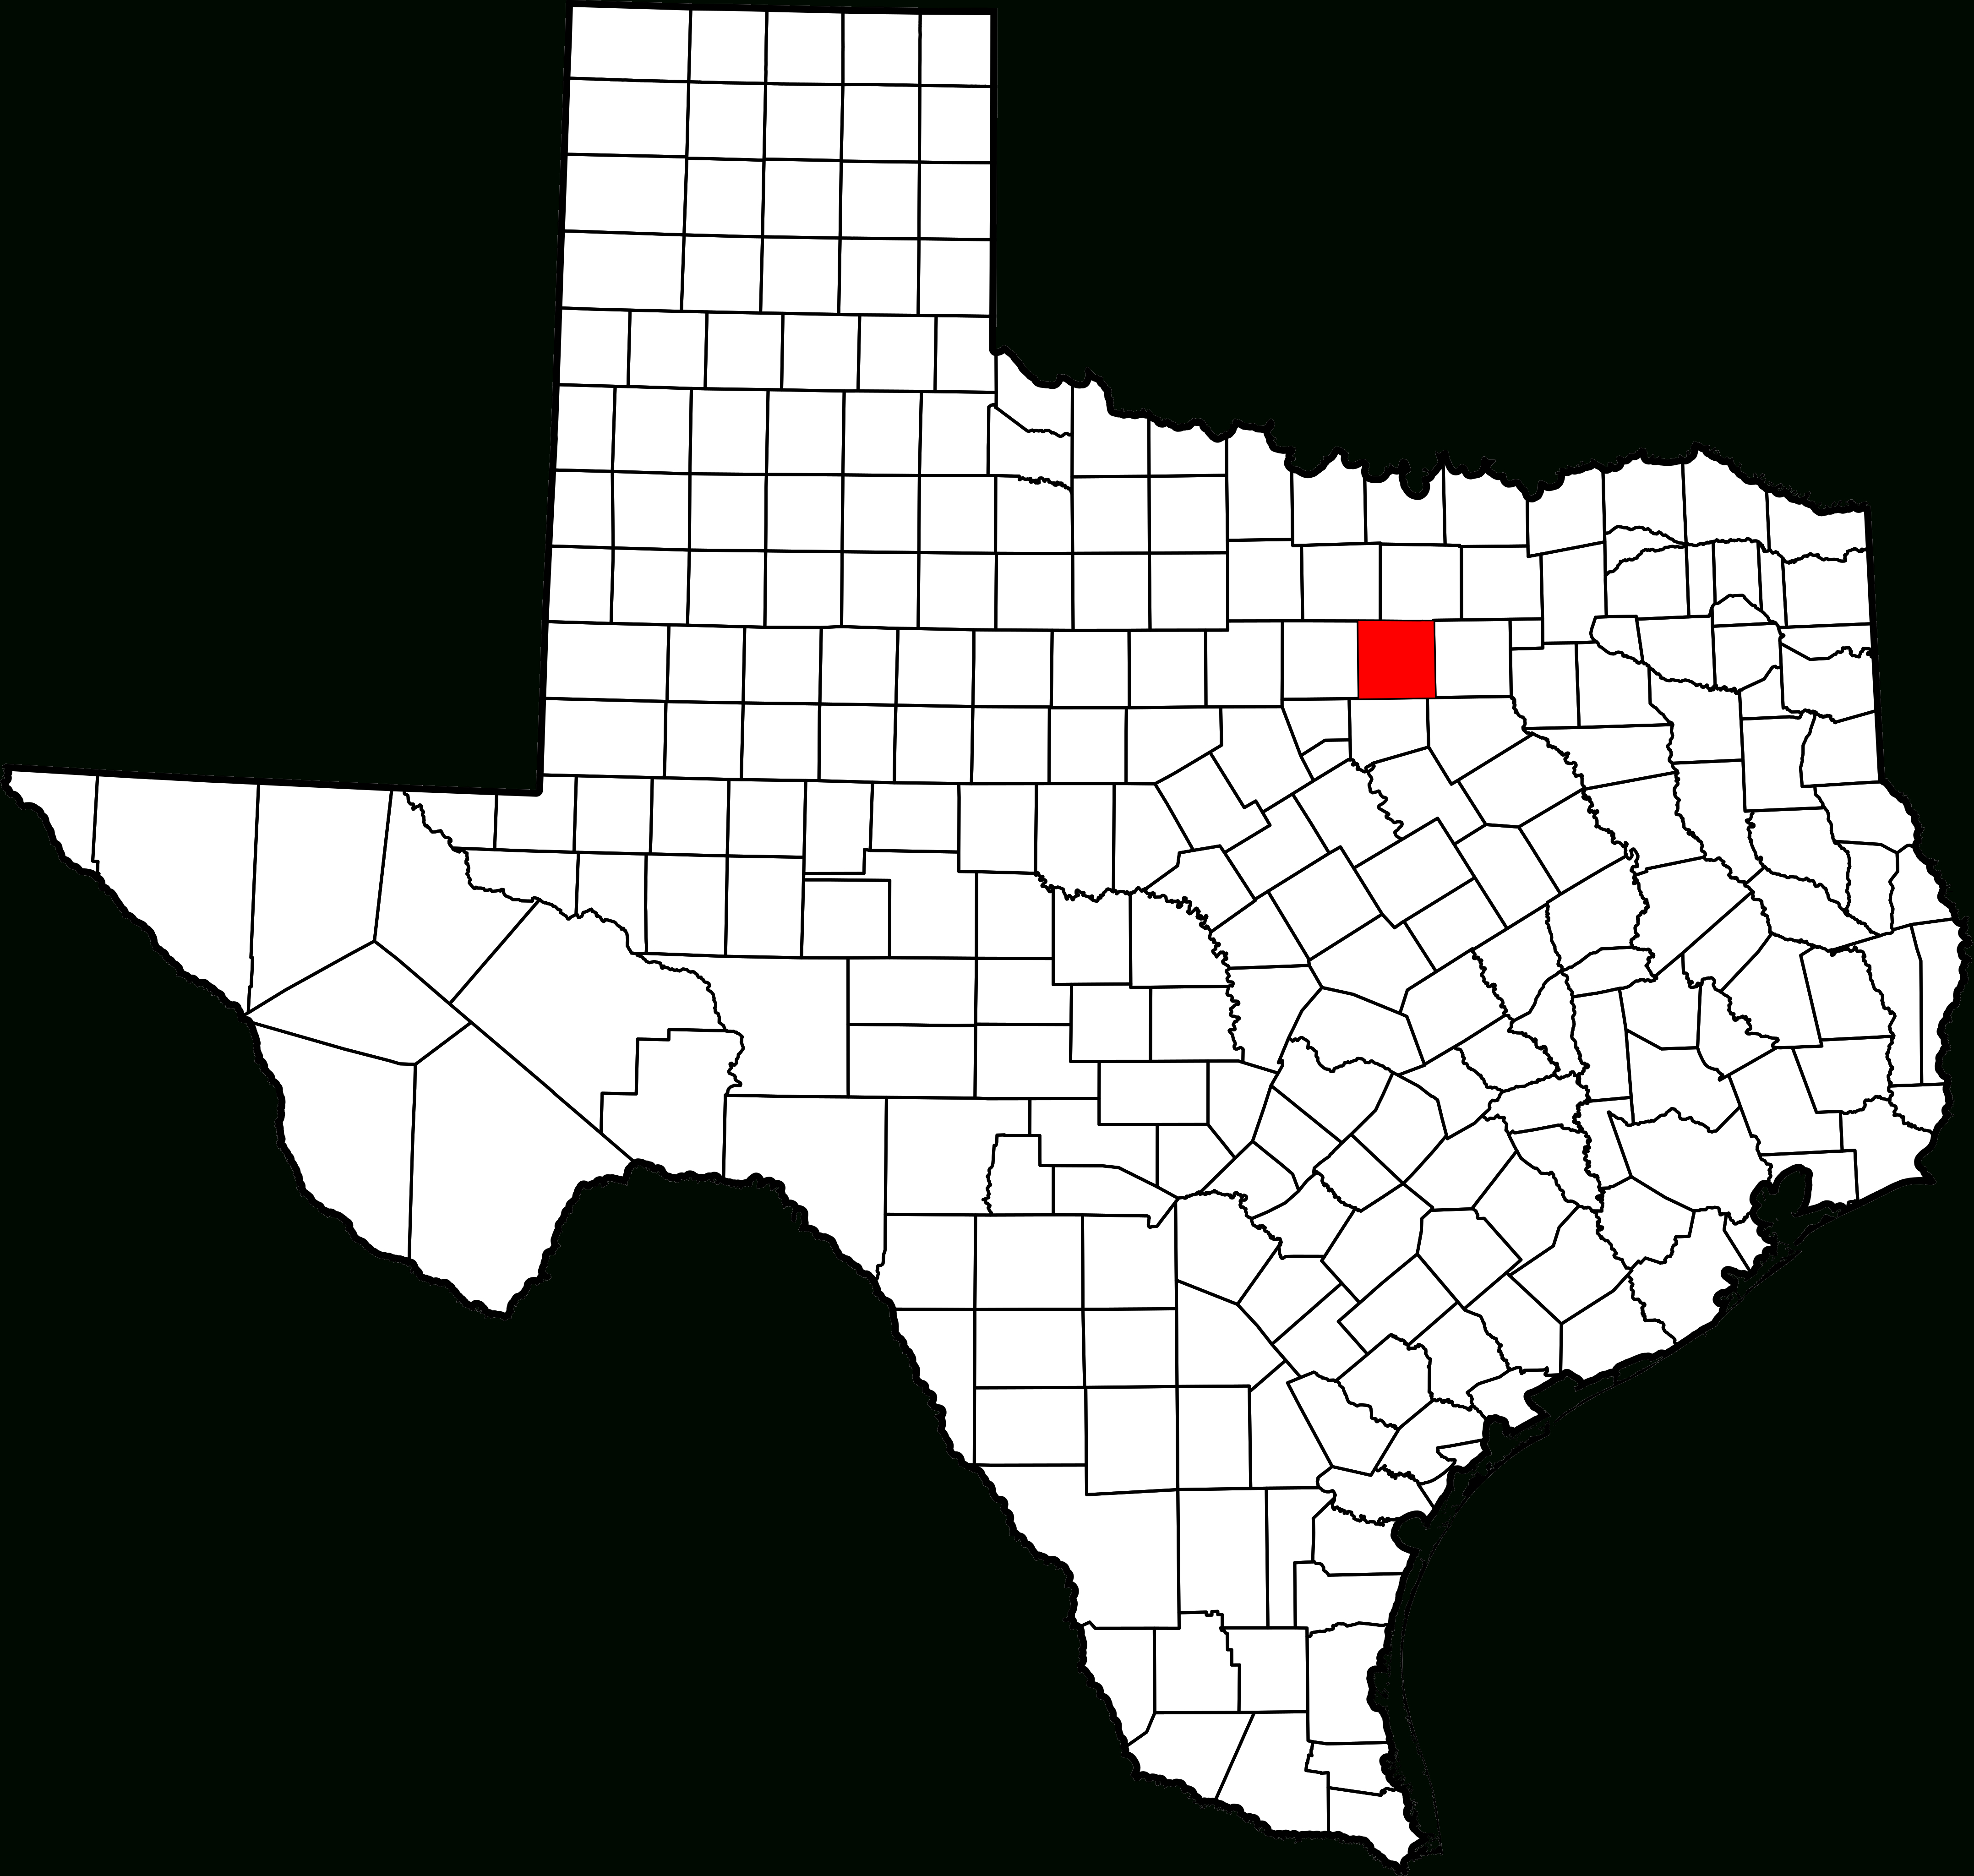 File:map Of Texas Highlighting Tarrant County.svg - Wikipedia - Where Is Southlake Texas On A Map Of Texas